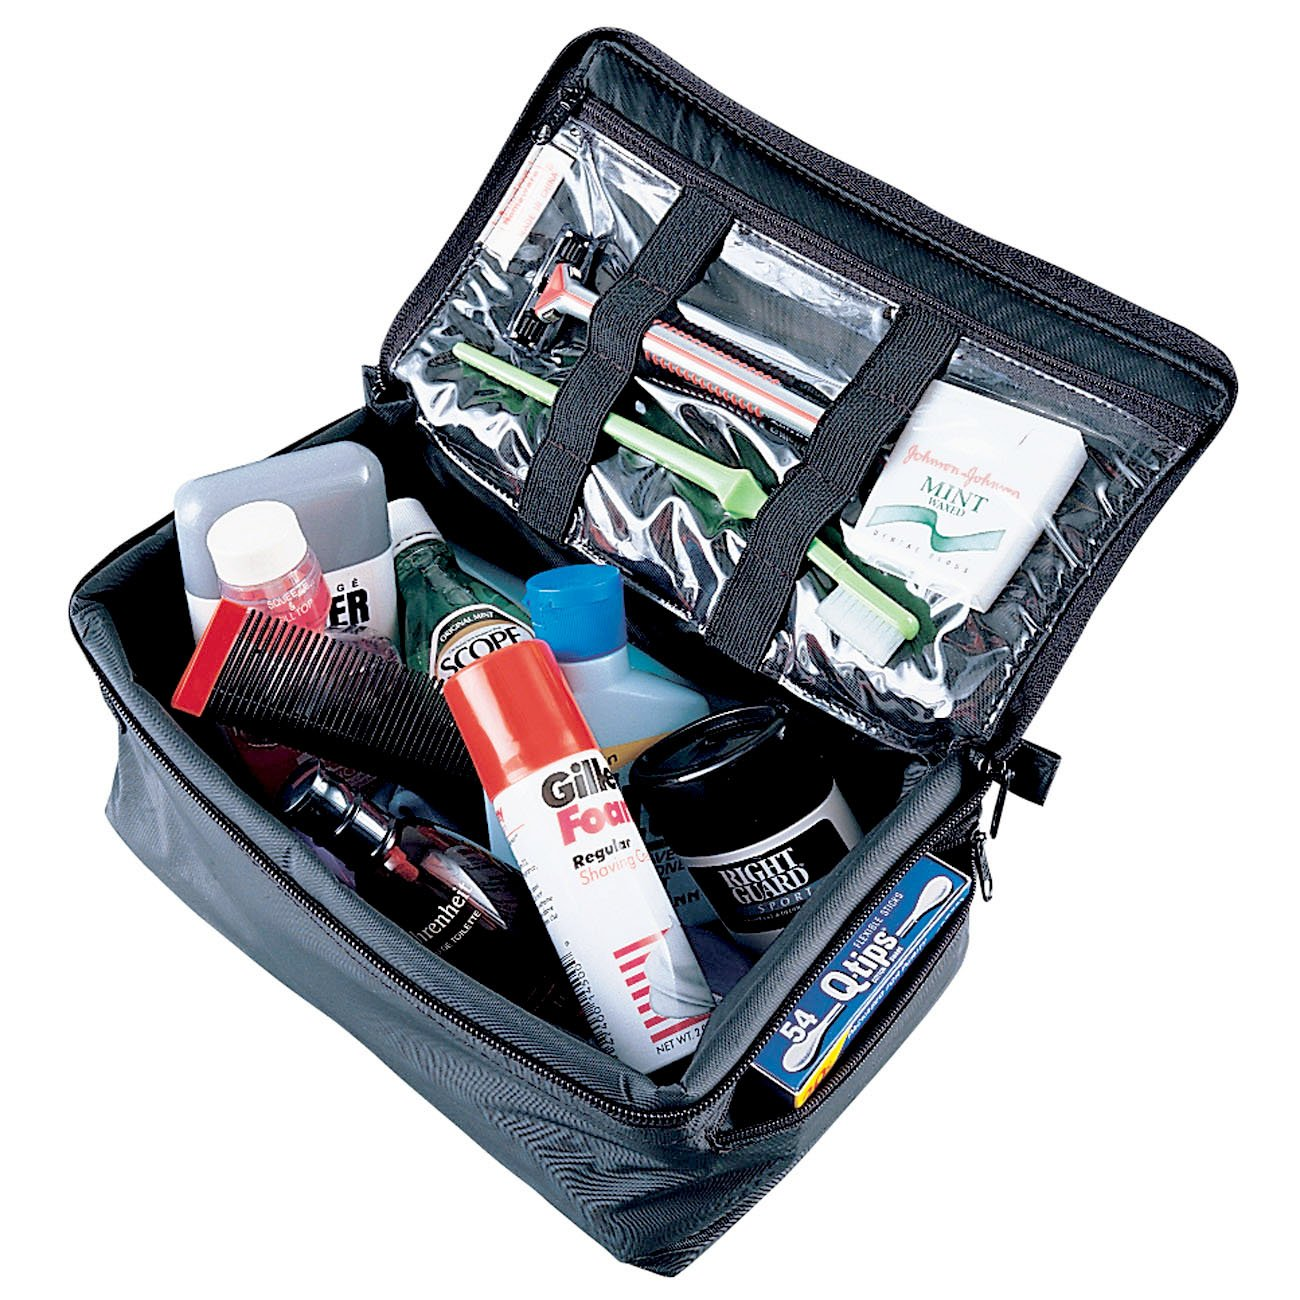 Household Essentials Grooming Toiletry Organizer Image 2